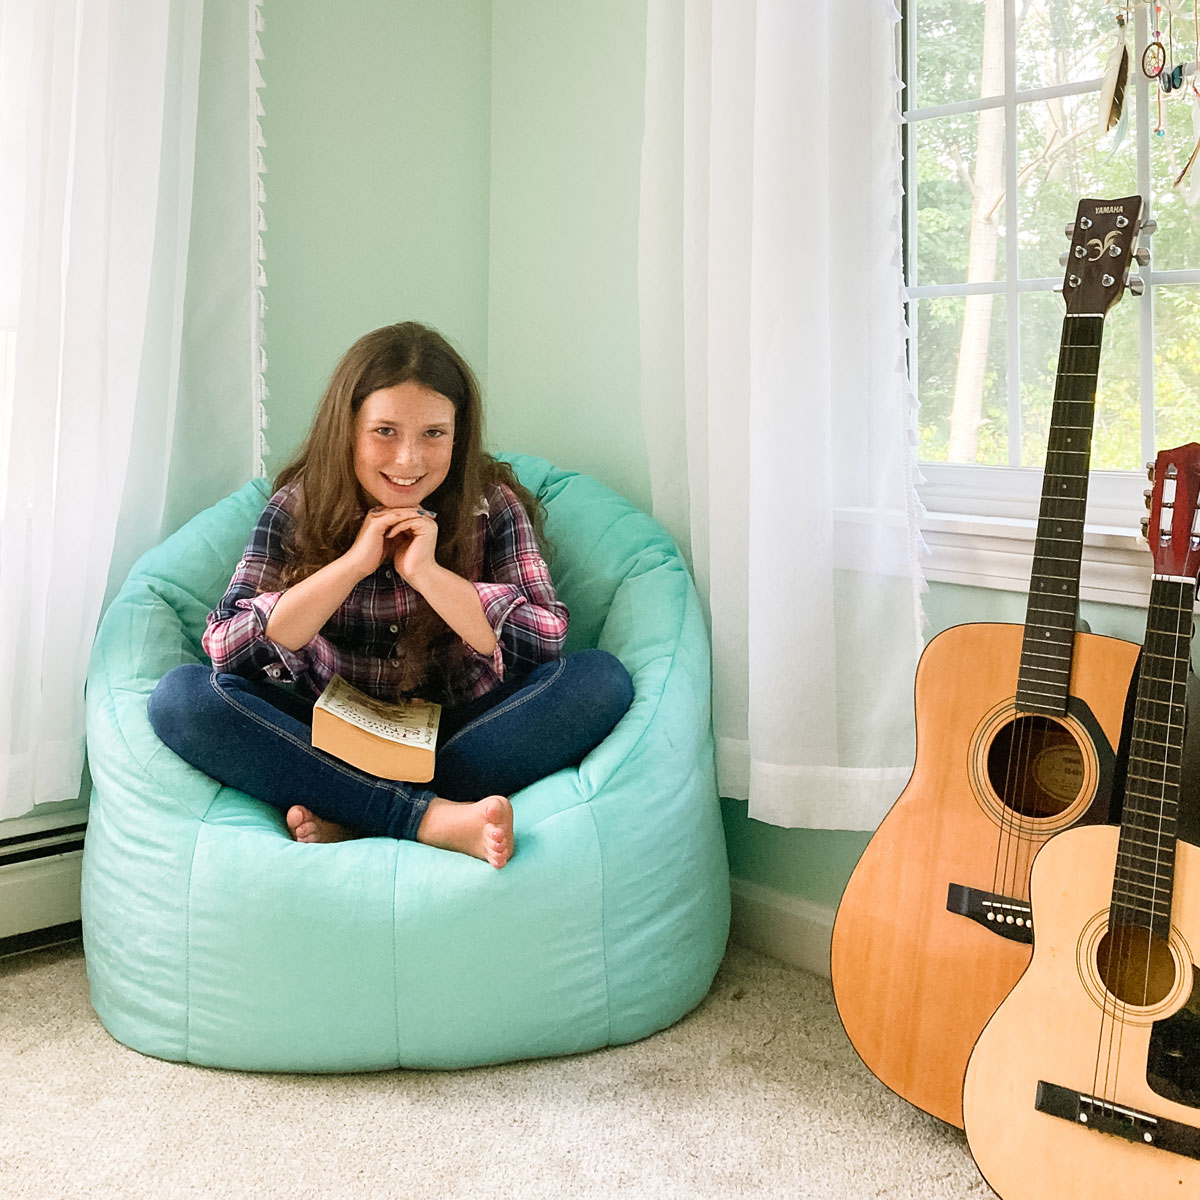 student in her room reading on beanbag chair with guitars